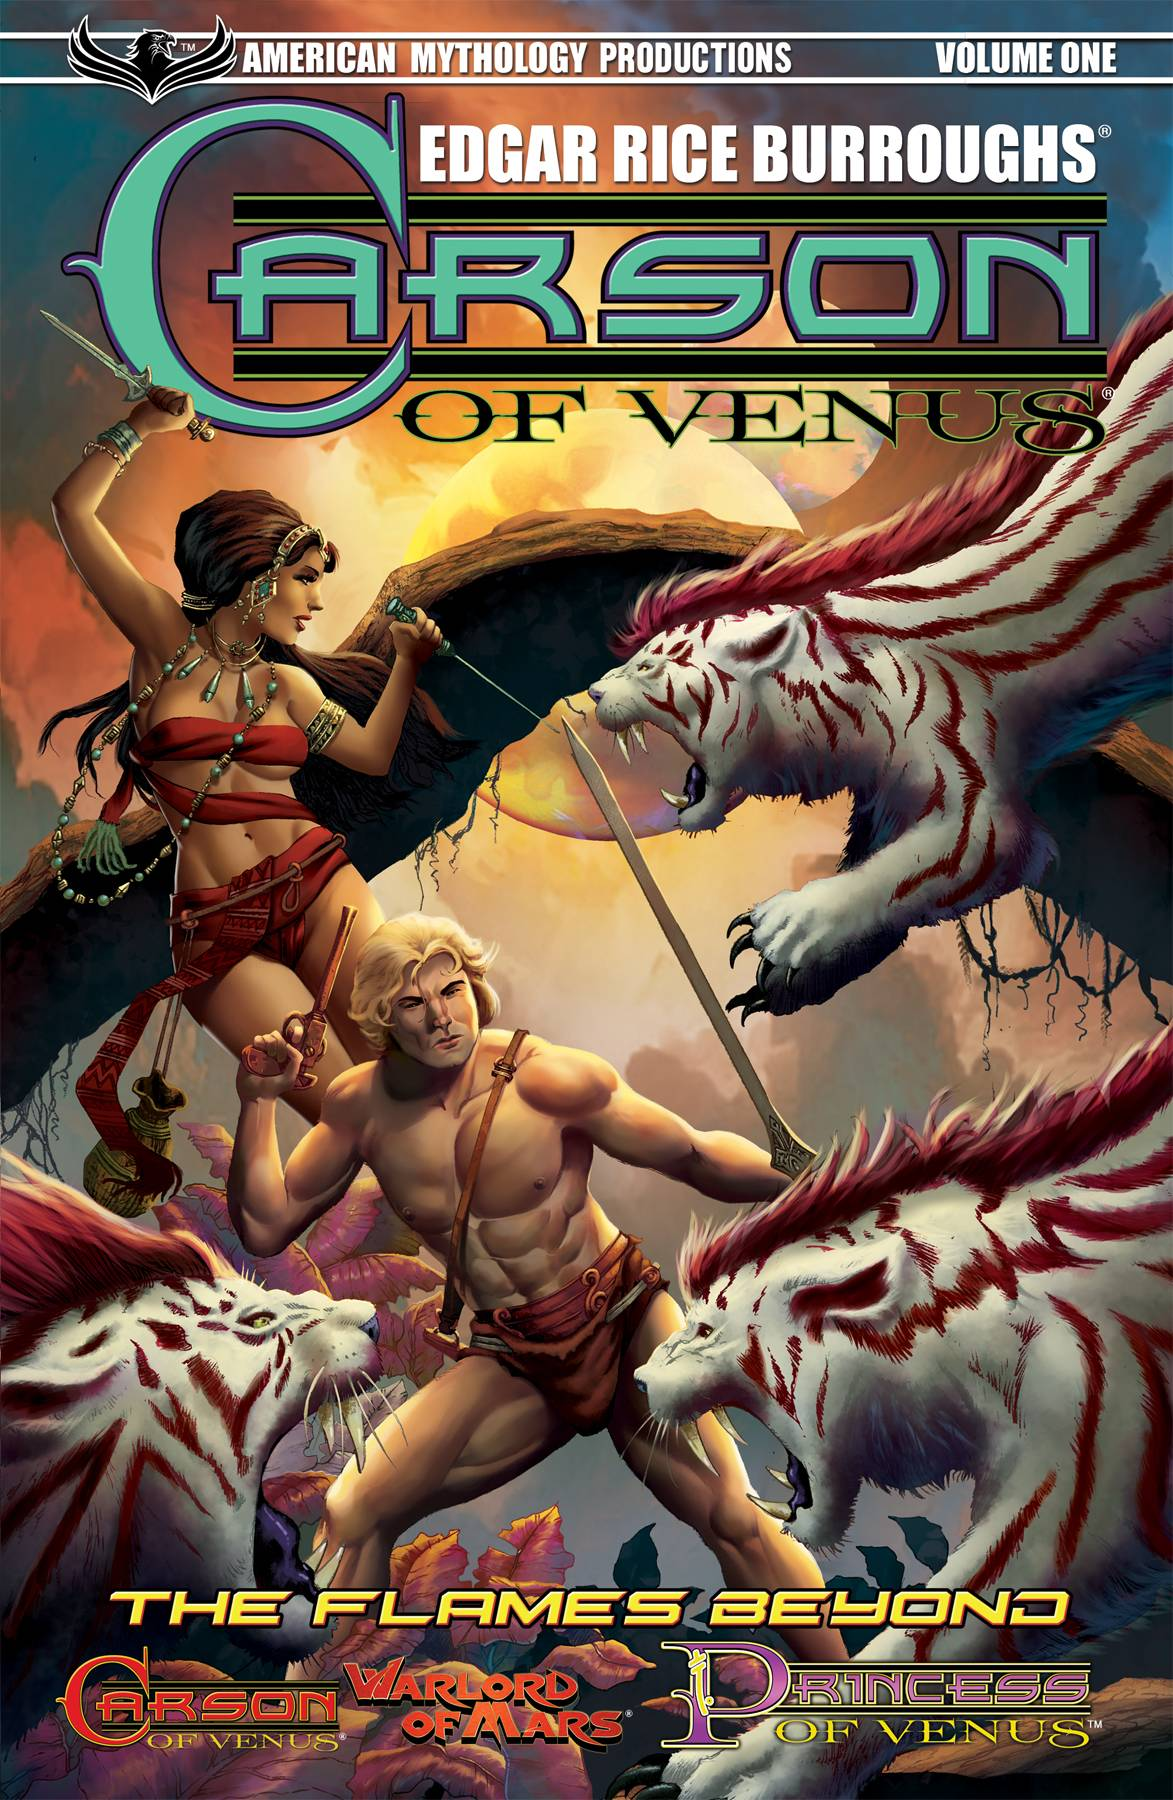 CARSON OF VENUS TP VOL 01 FLAMES BEYOND & OTHER TALES